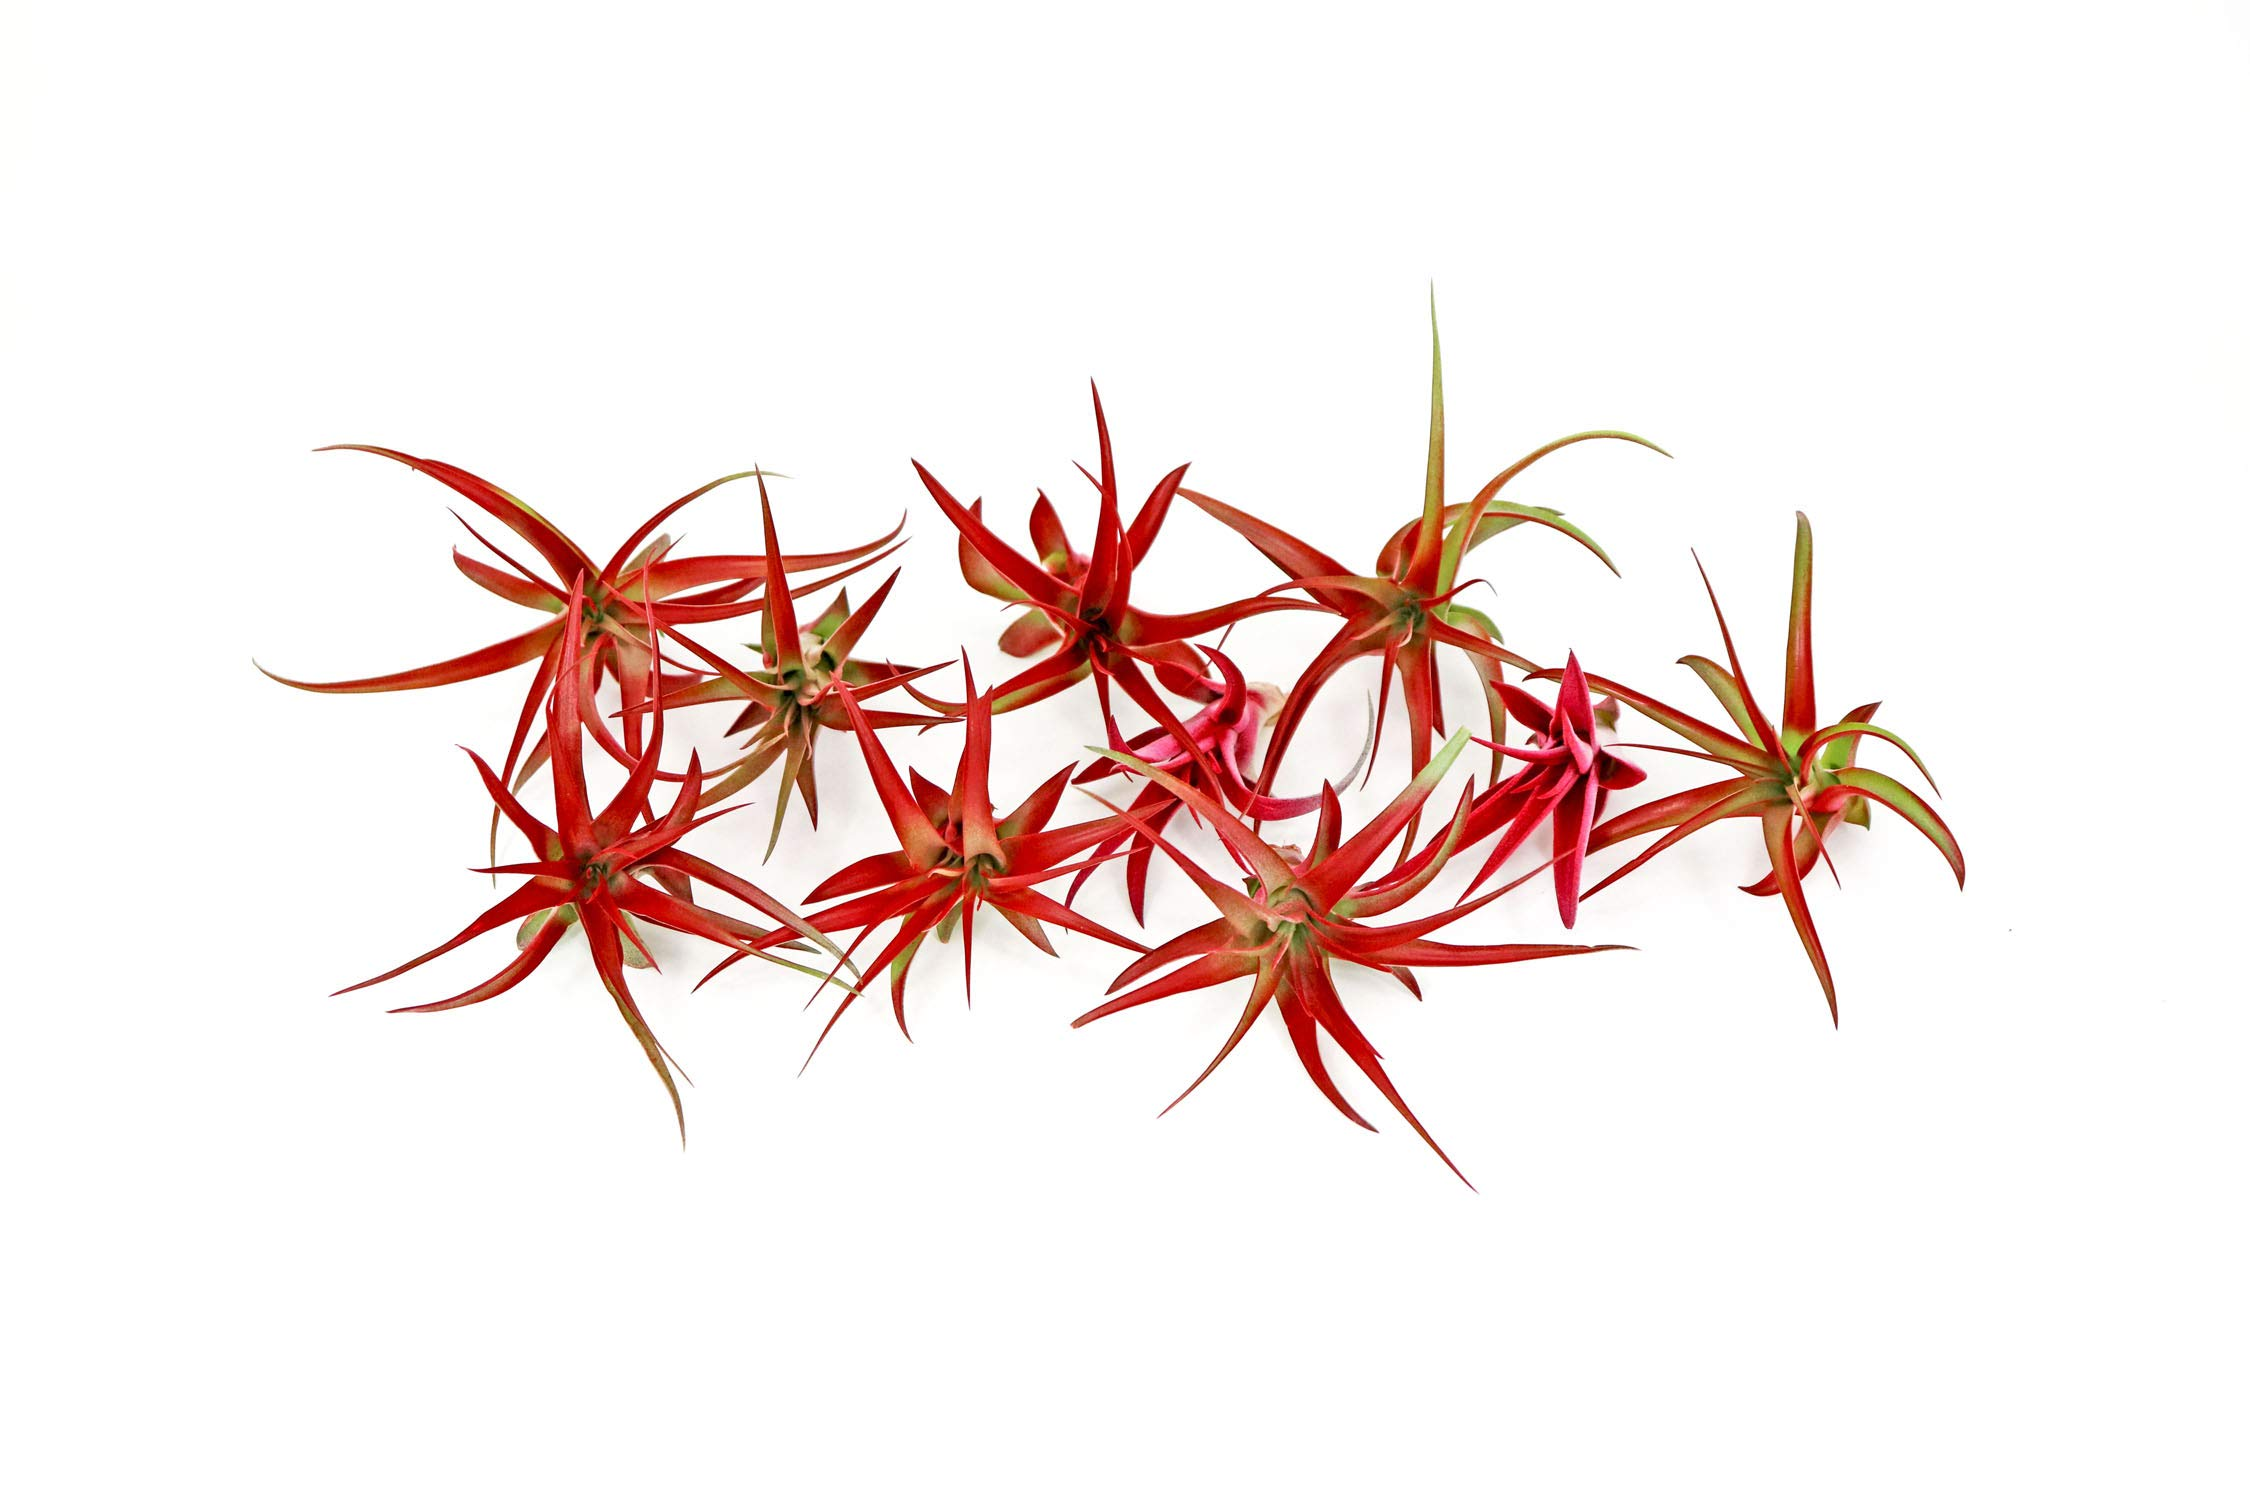 10 Live Air Plants | Bright Red Tillandsia Air Plant Pack | Colorful Indoor Plants | Real Houseplants | Easy Terrarium Decor Kit by Plants for Pets by Plants for Pets (Image #5)